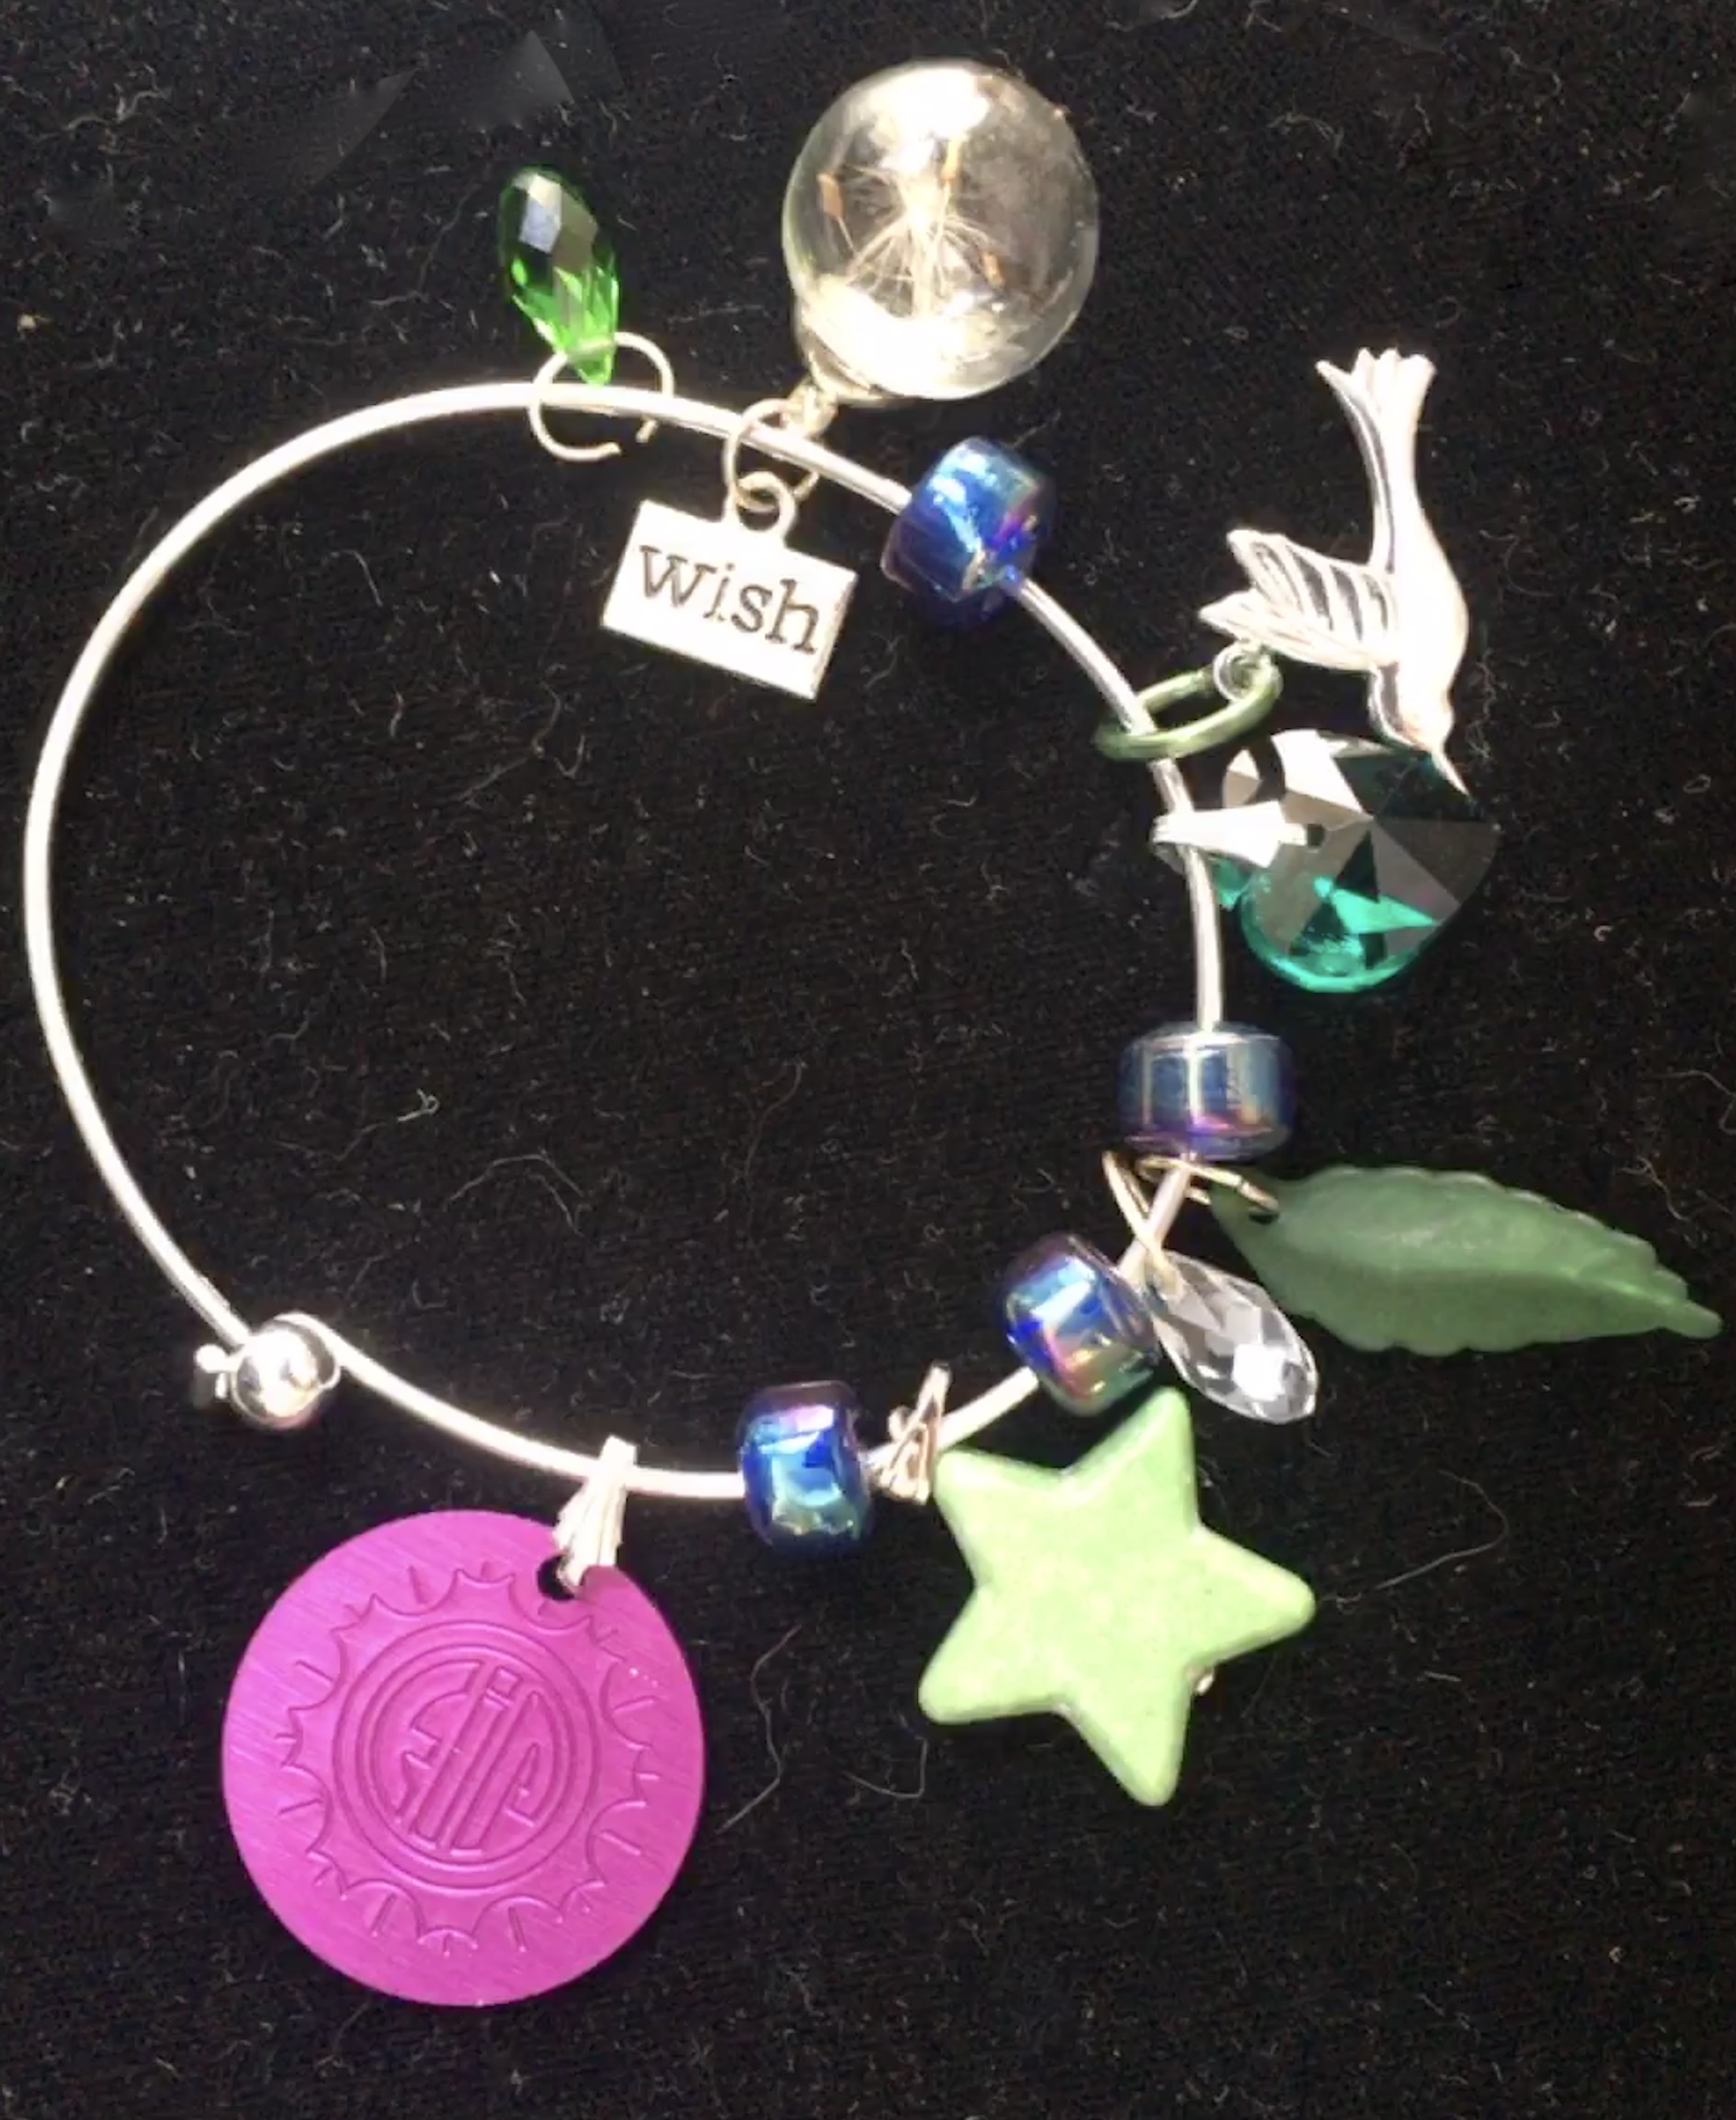 Wish Charm Bangle with Purple Energy Disk